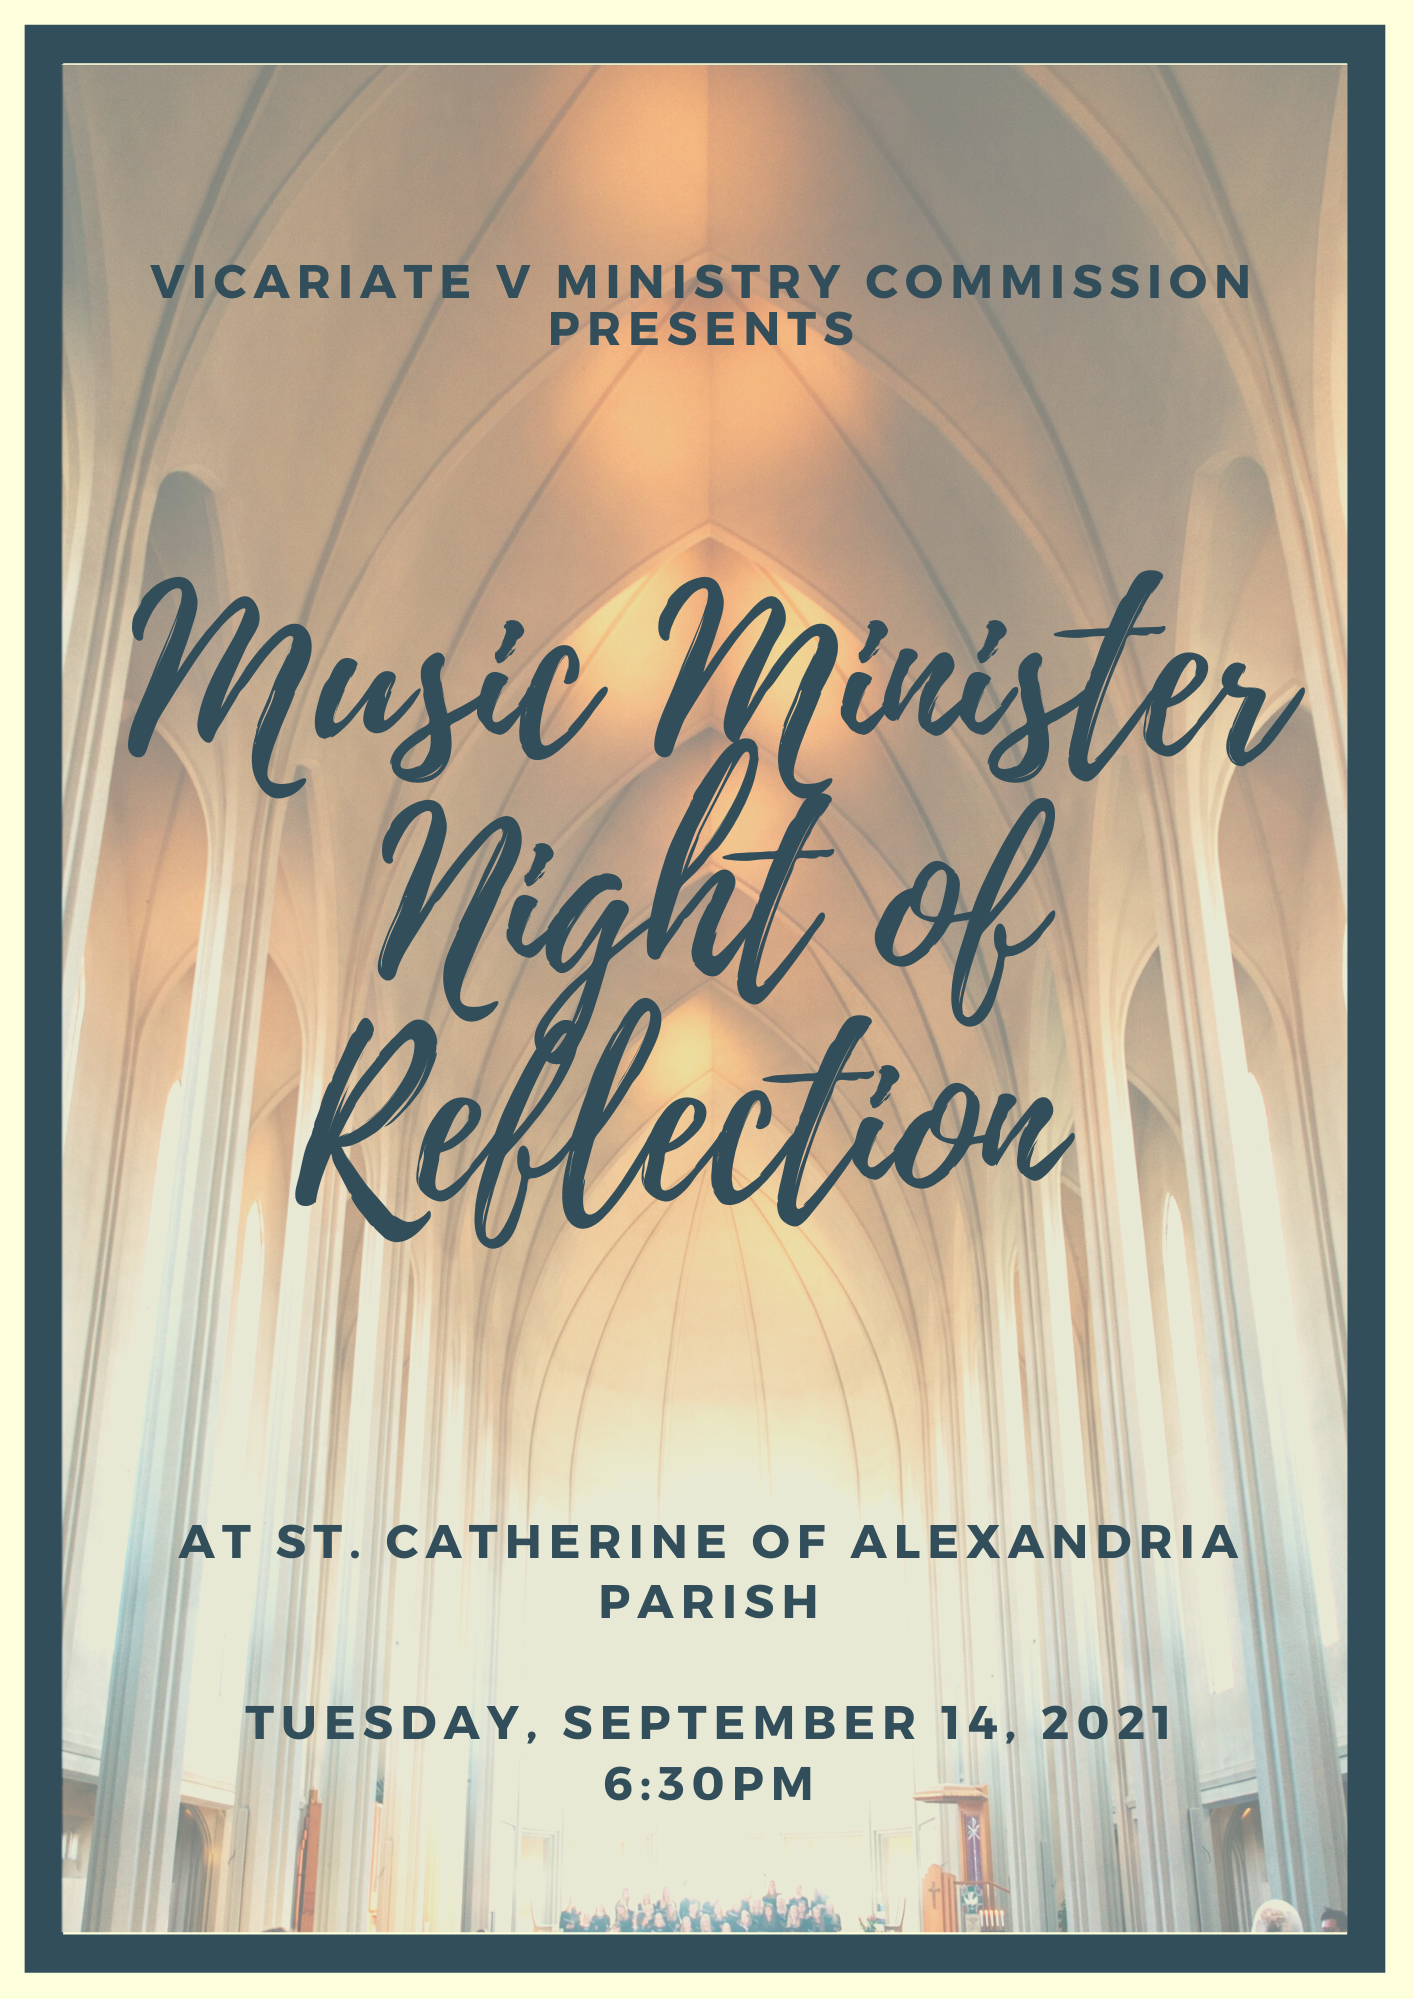 Music Minister Night of Reflection